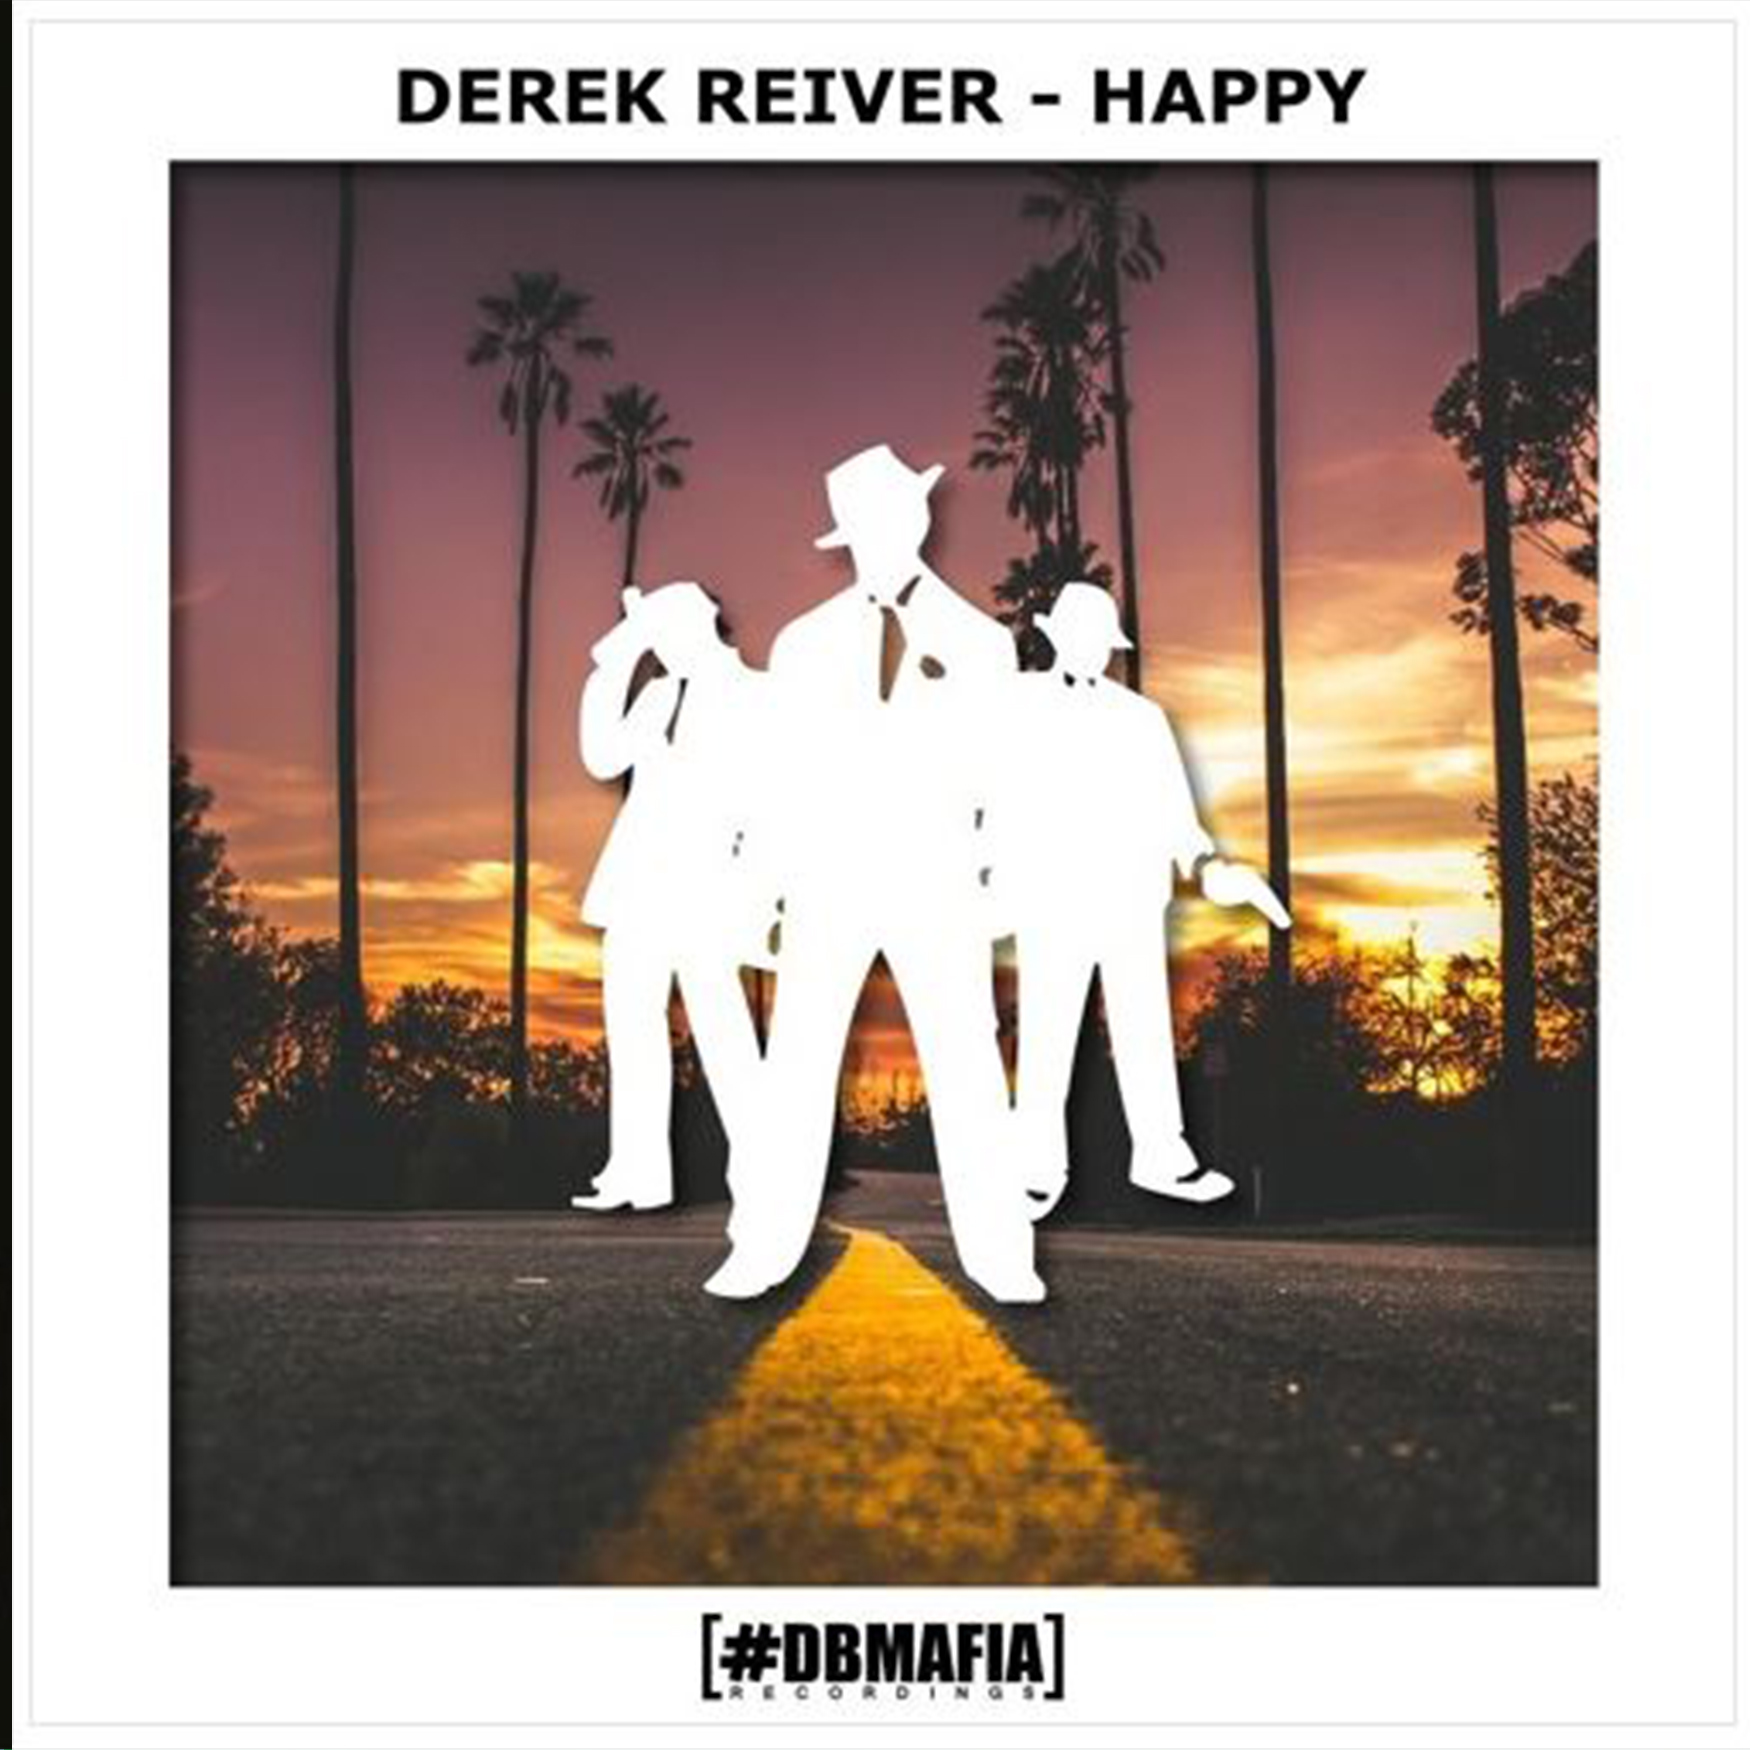 Derek Reiver - Happy